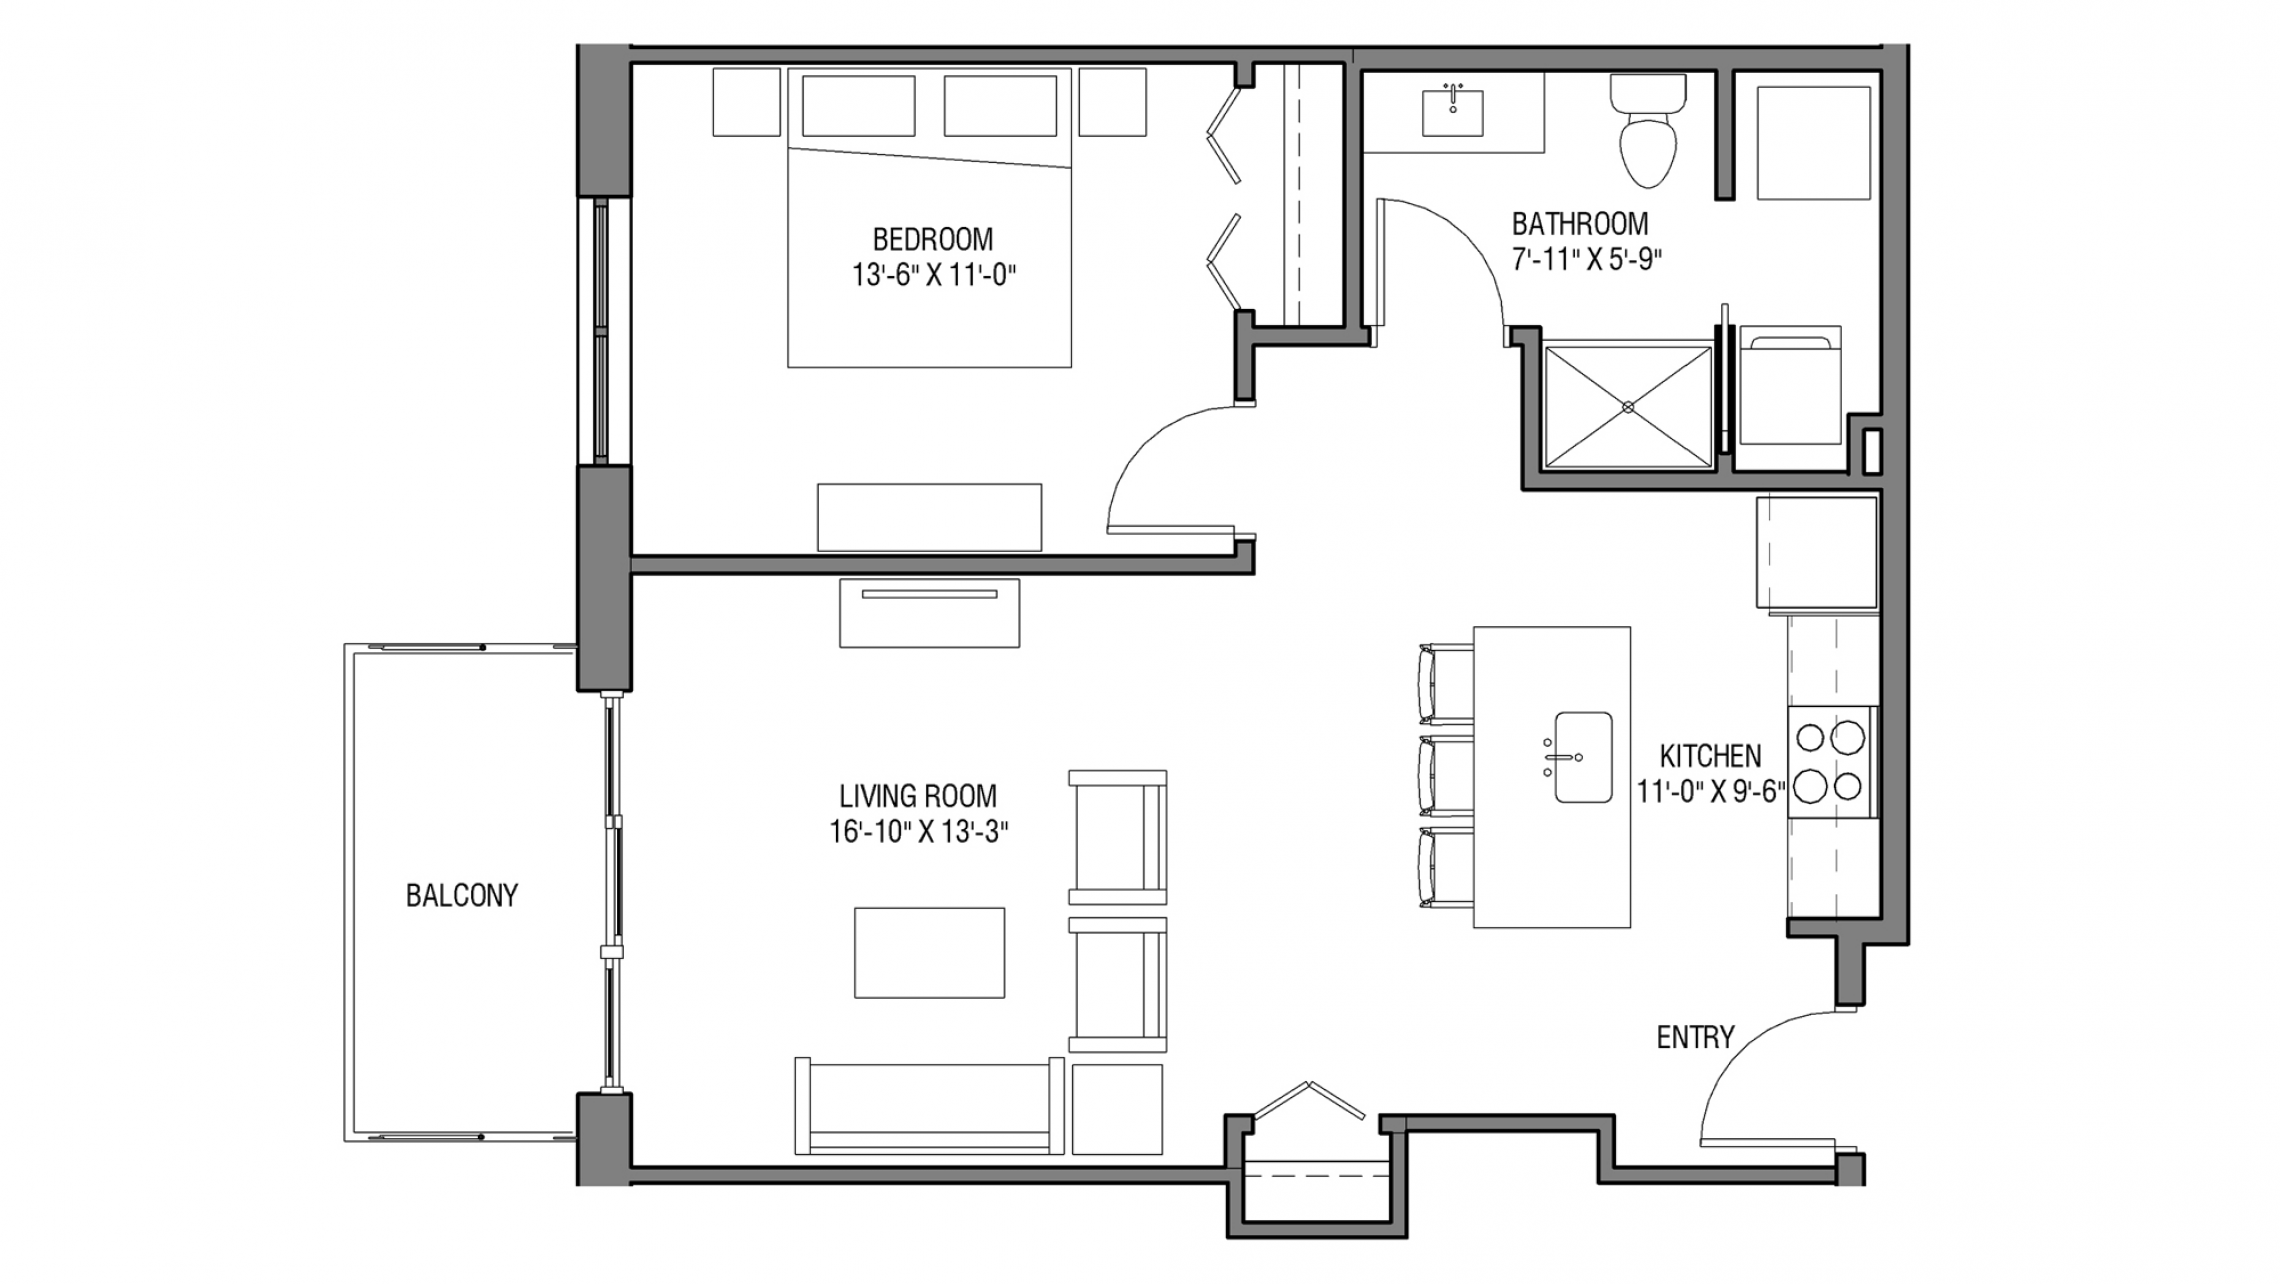 ULI Nine Line 521 - One Bedroom, One Bathroom